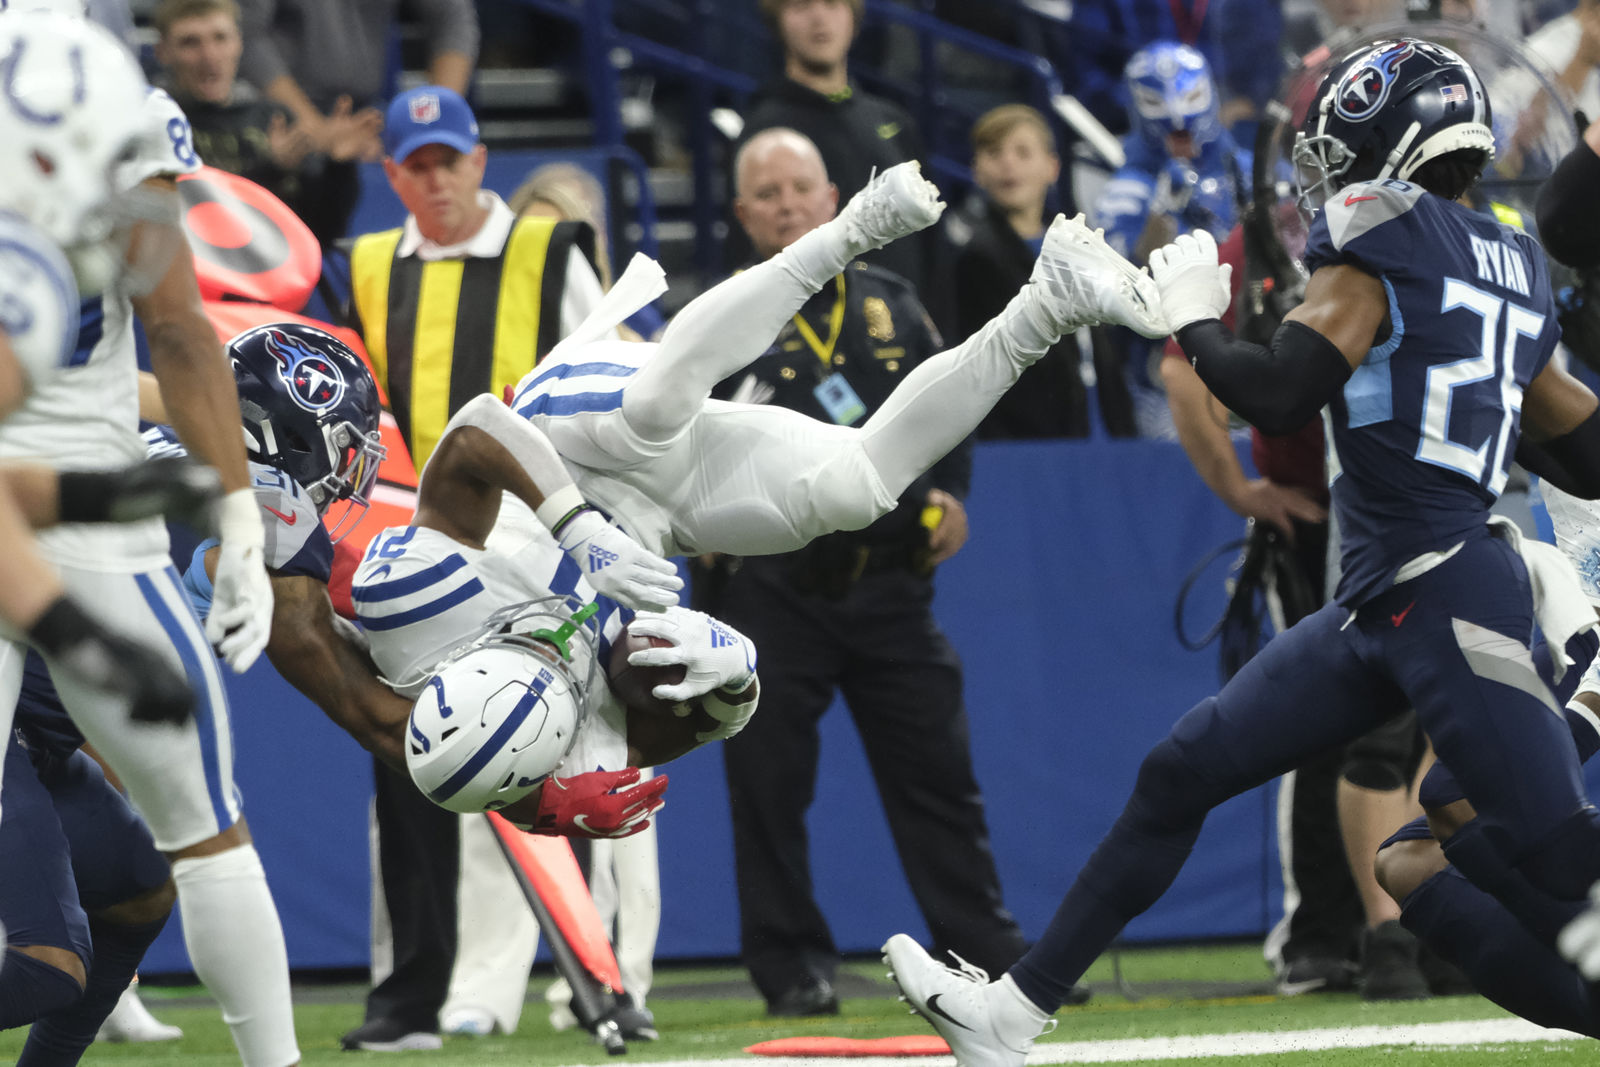 Indianapolis Colts running back Nyheim Hines (21) flips over between Tennessee Titans free safety Kevin Byard (31) and cornerback Logan Ryan (26) during the first half of an NFL football game in Indianapolis, Sunday, Dec. 1, 2019. (AP Photo/AJ Mast)